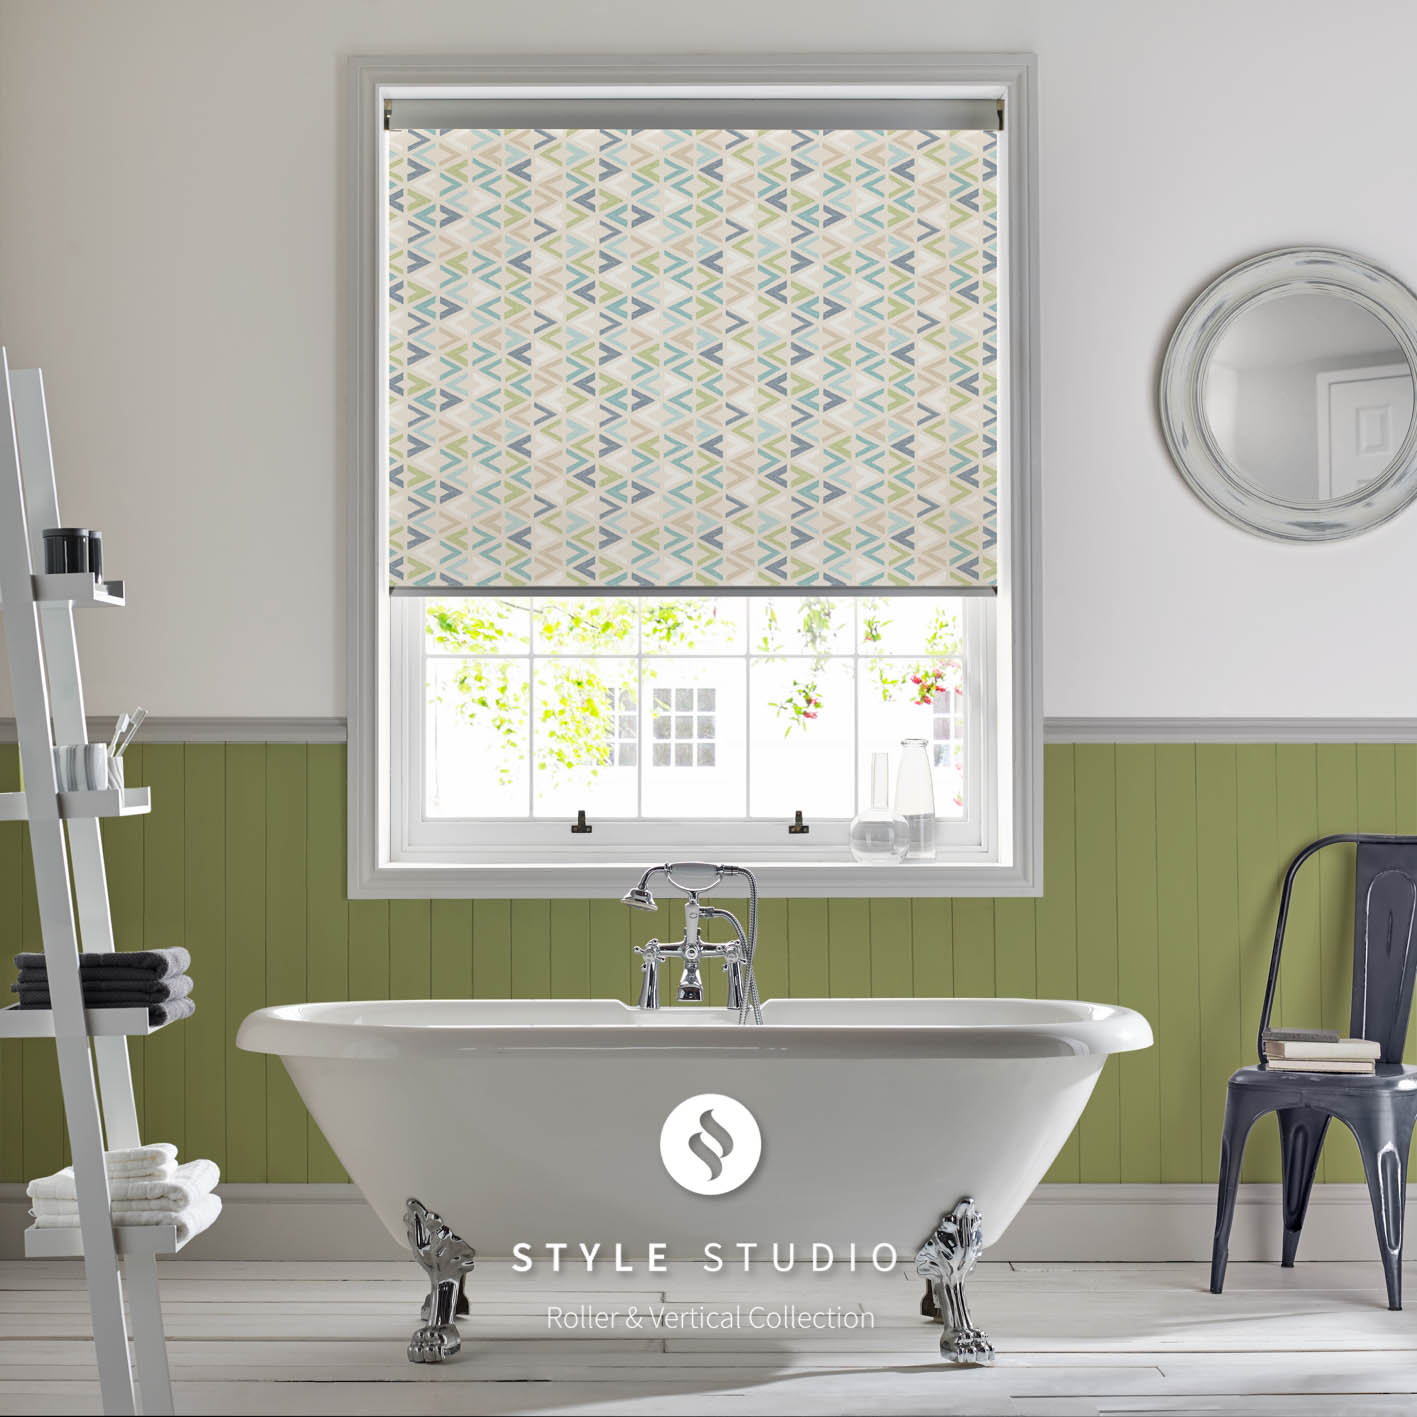 Cheap bathroom blinds uk - Roller Blinds Bathroom Blinds For Bathroom Windows Uk Bathroom Window